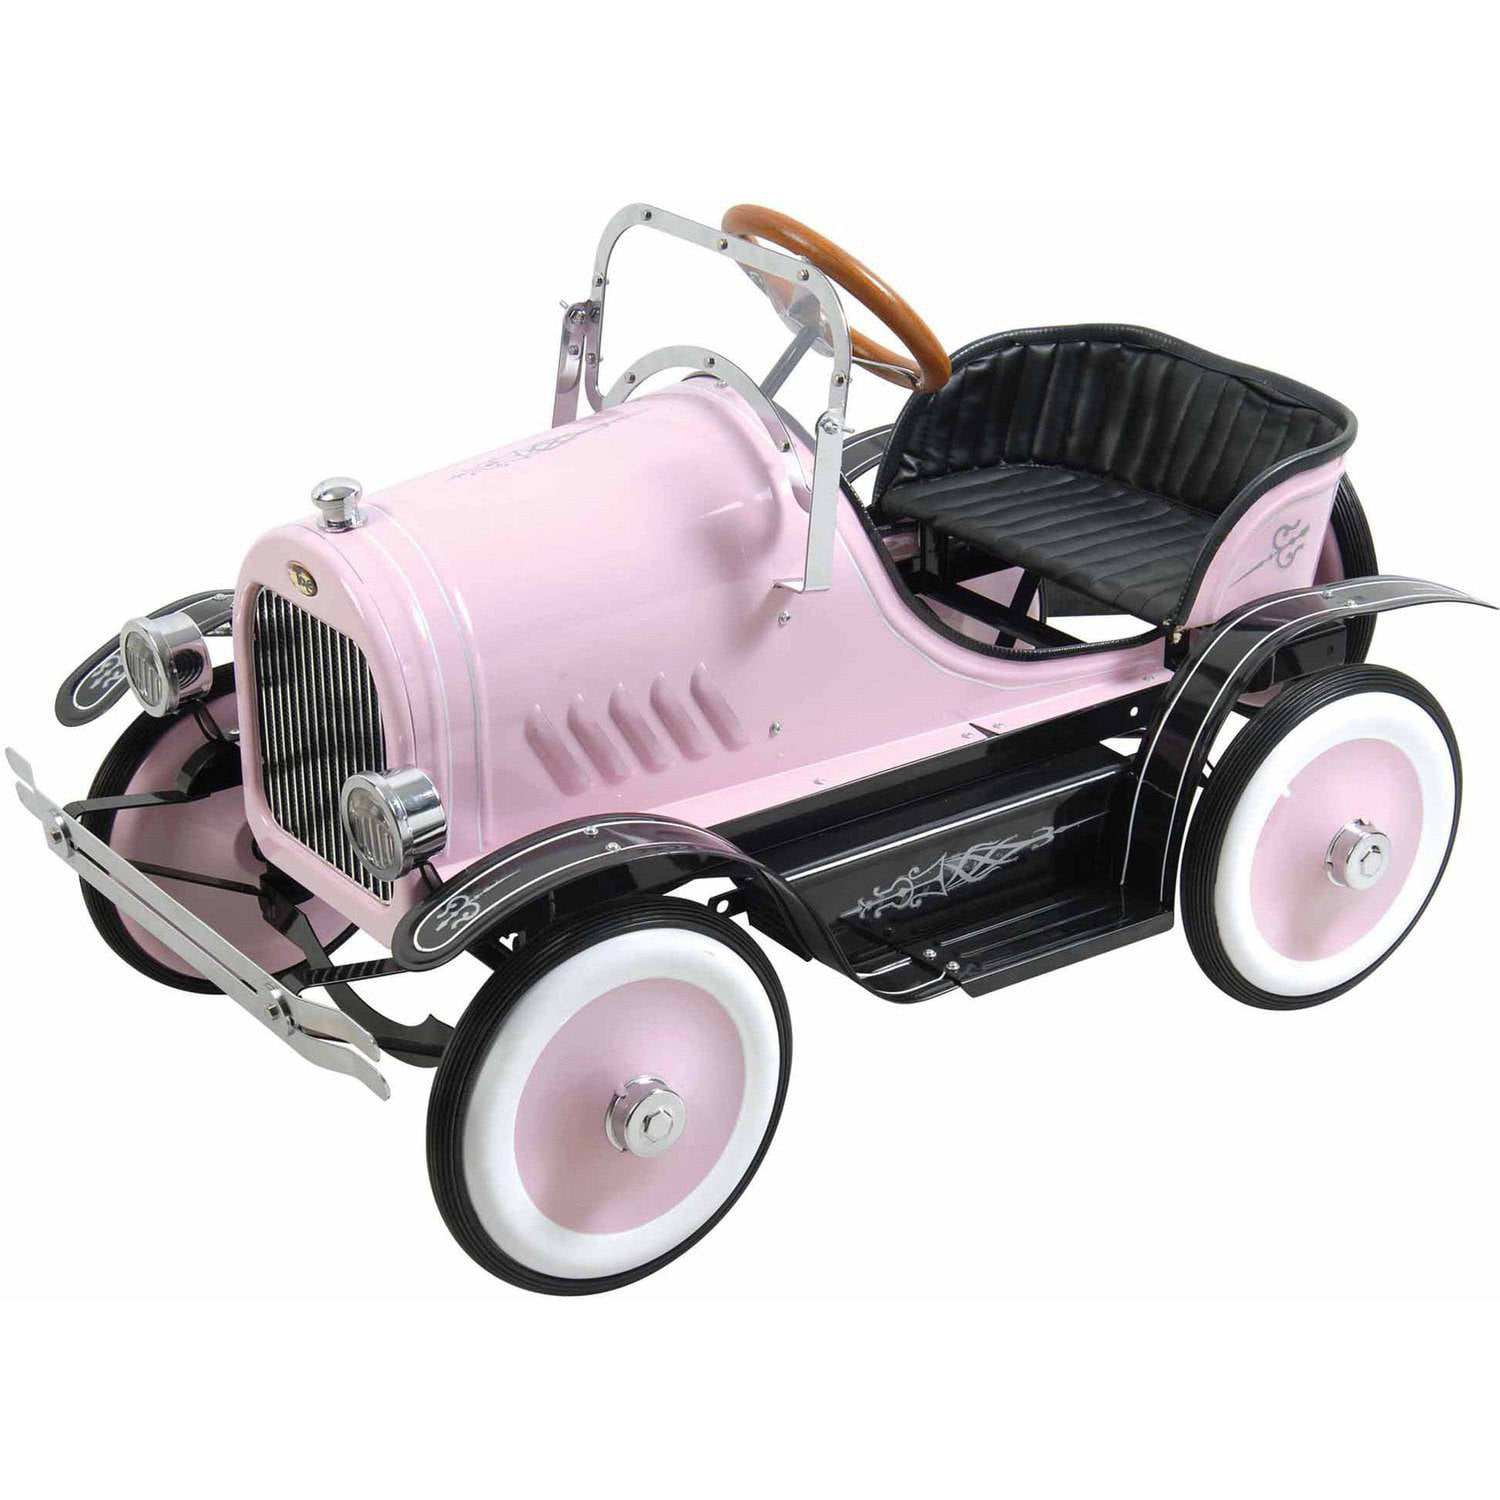 Deluxe Pink Roadster Pedal Car by Big Toy USA